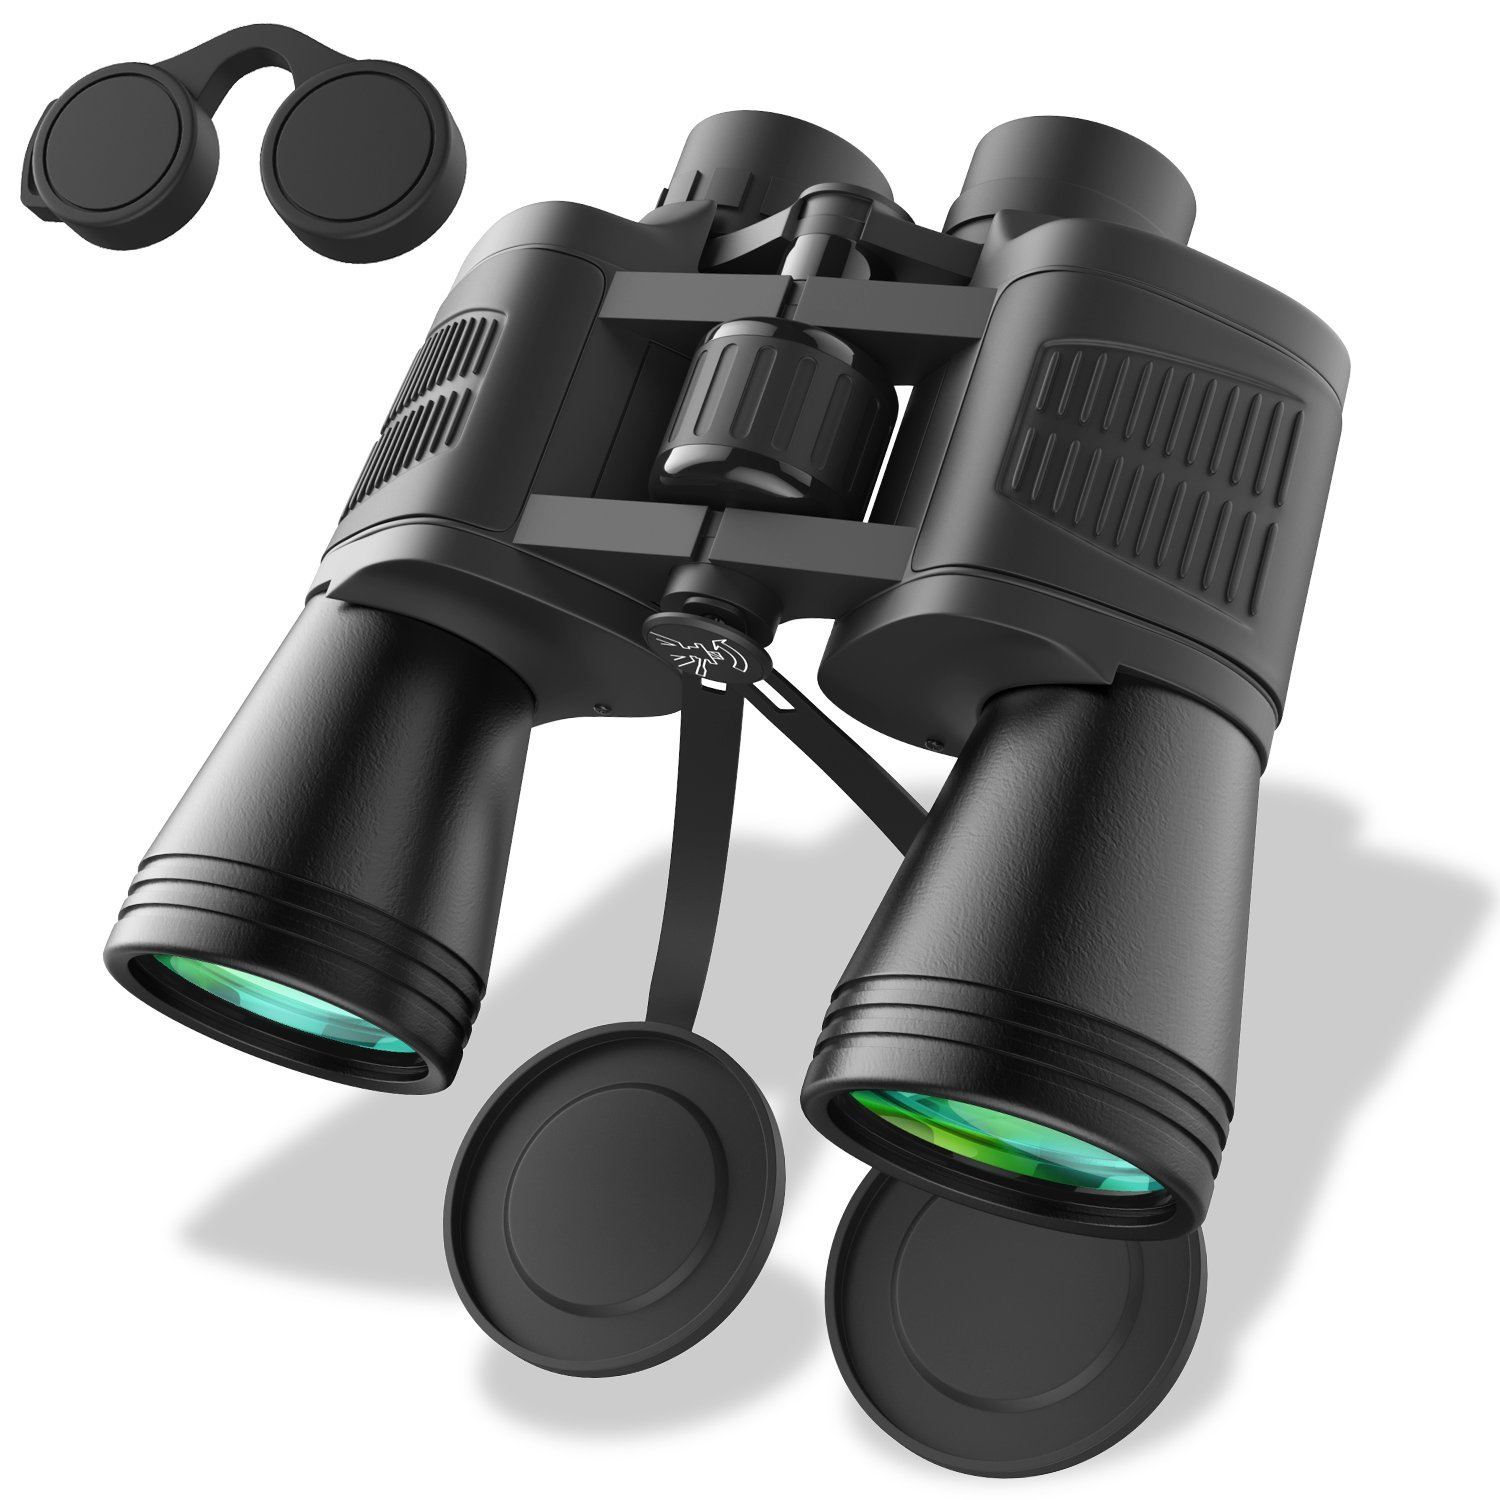 Zvpod 12 x 50 Binoculars for Adults – Wide Angle Weak Light Night Vision Compact Lightweight HD Bird Watching Waterproof for Outdoor Sports Games Concerts Travel Hiking w Strap Carrying Bag